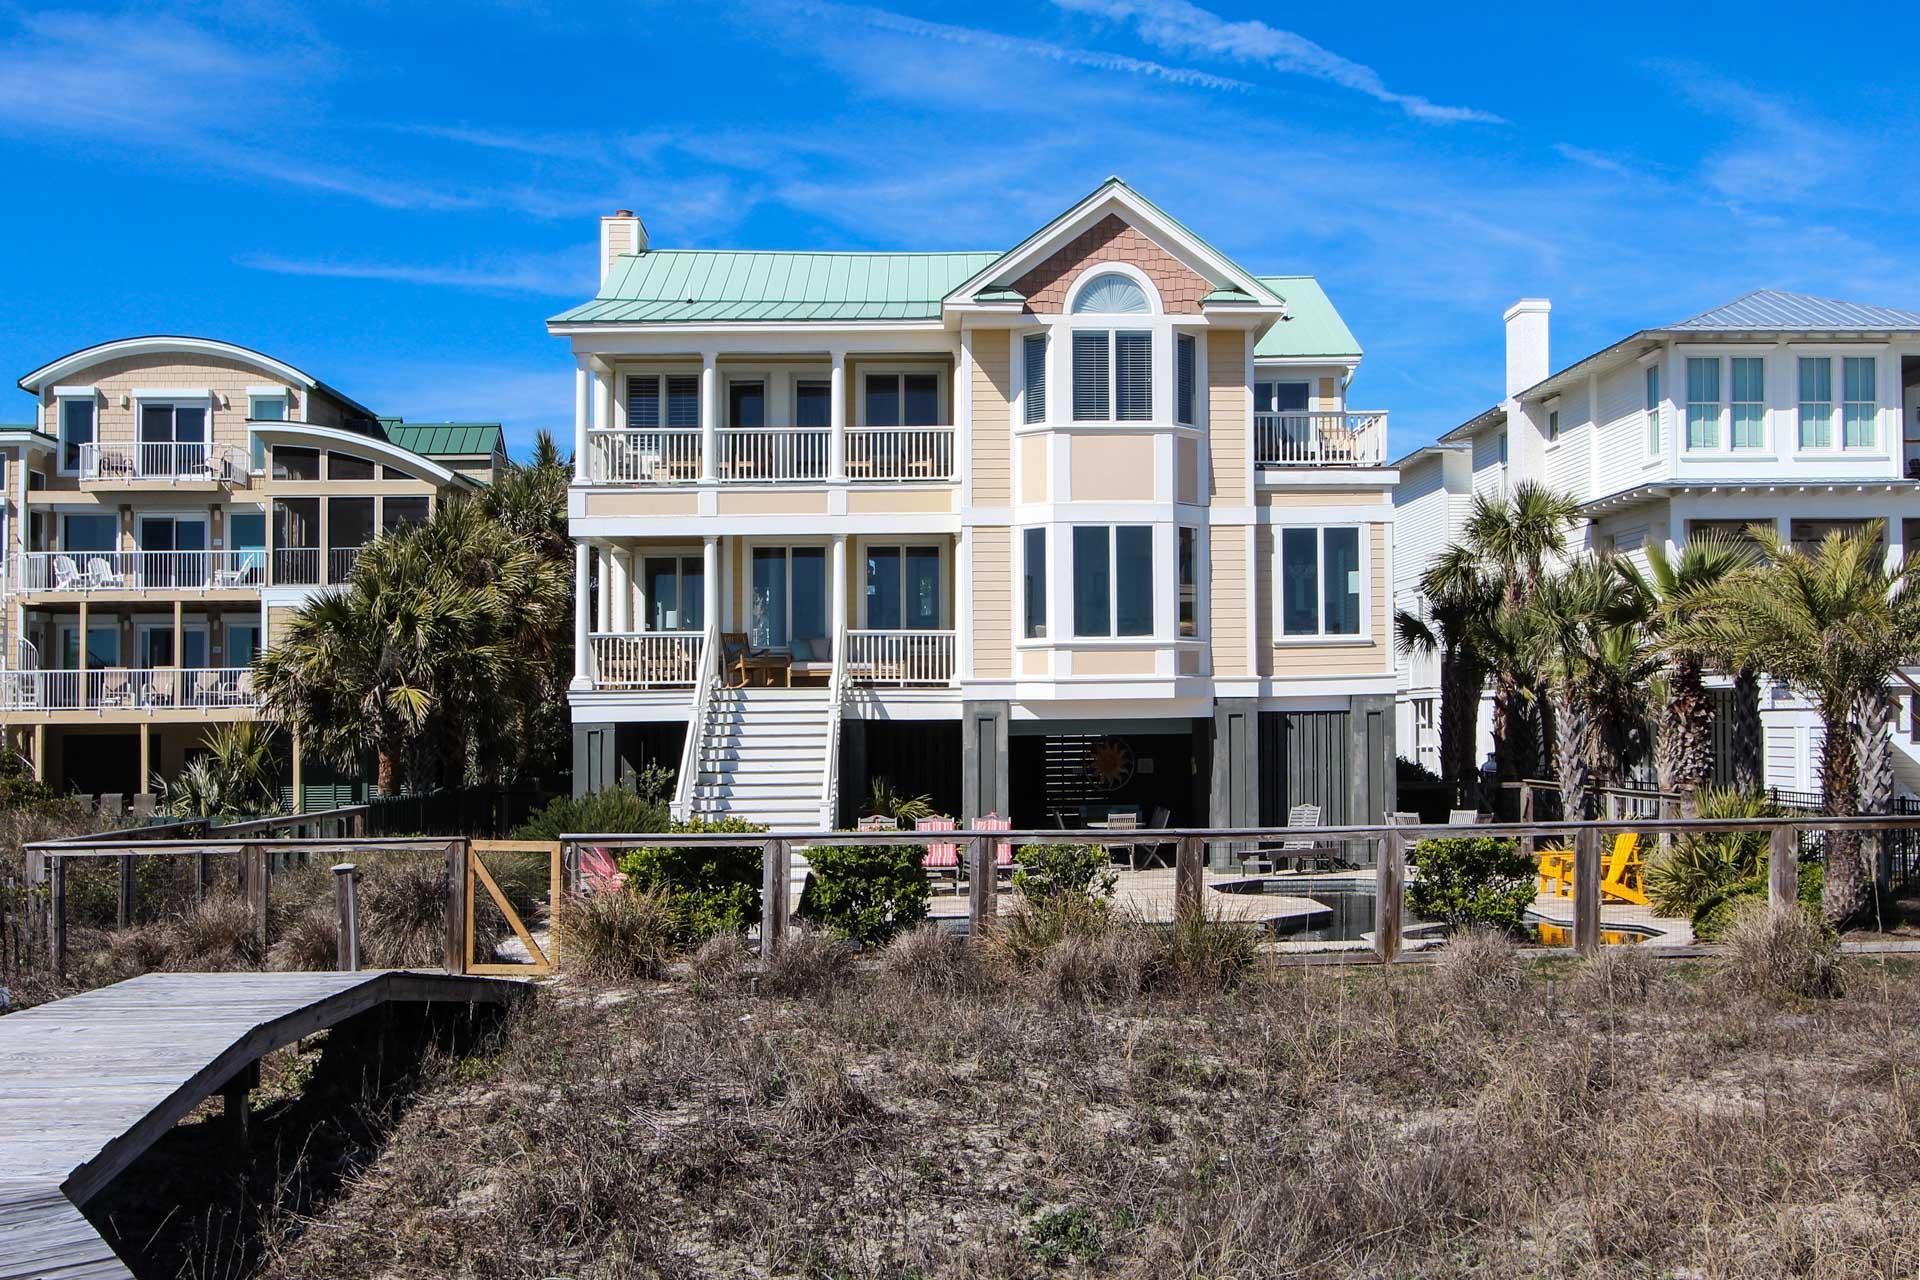 Isle of Palms Homes For Sale - 810 Ocean, Isle of Palms, SC - 29